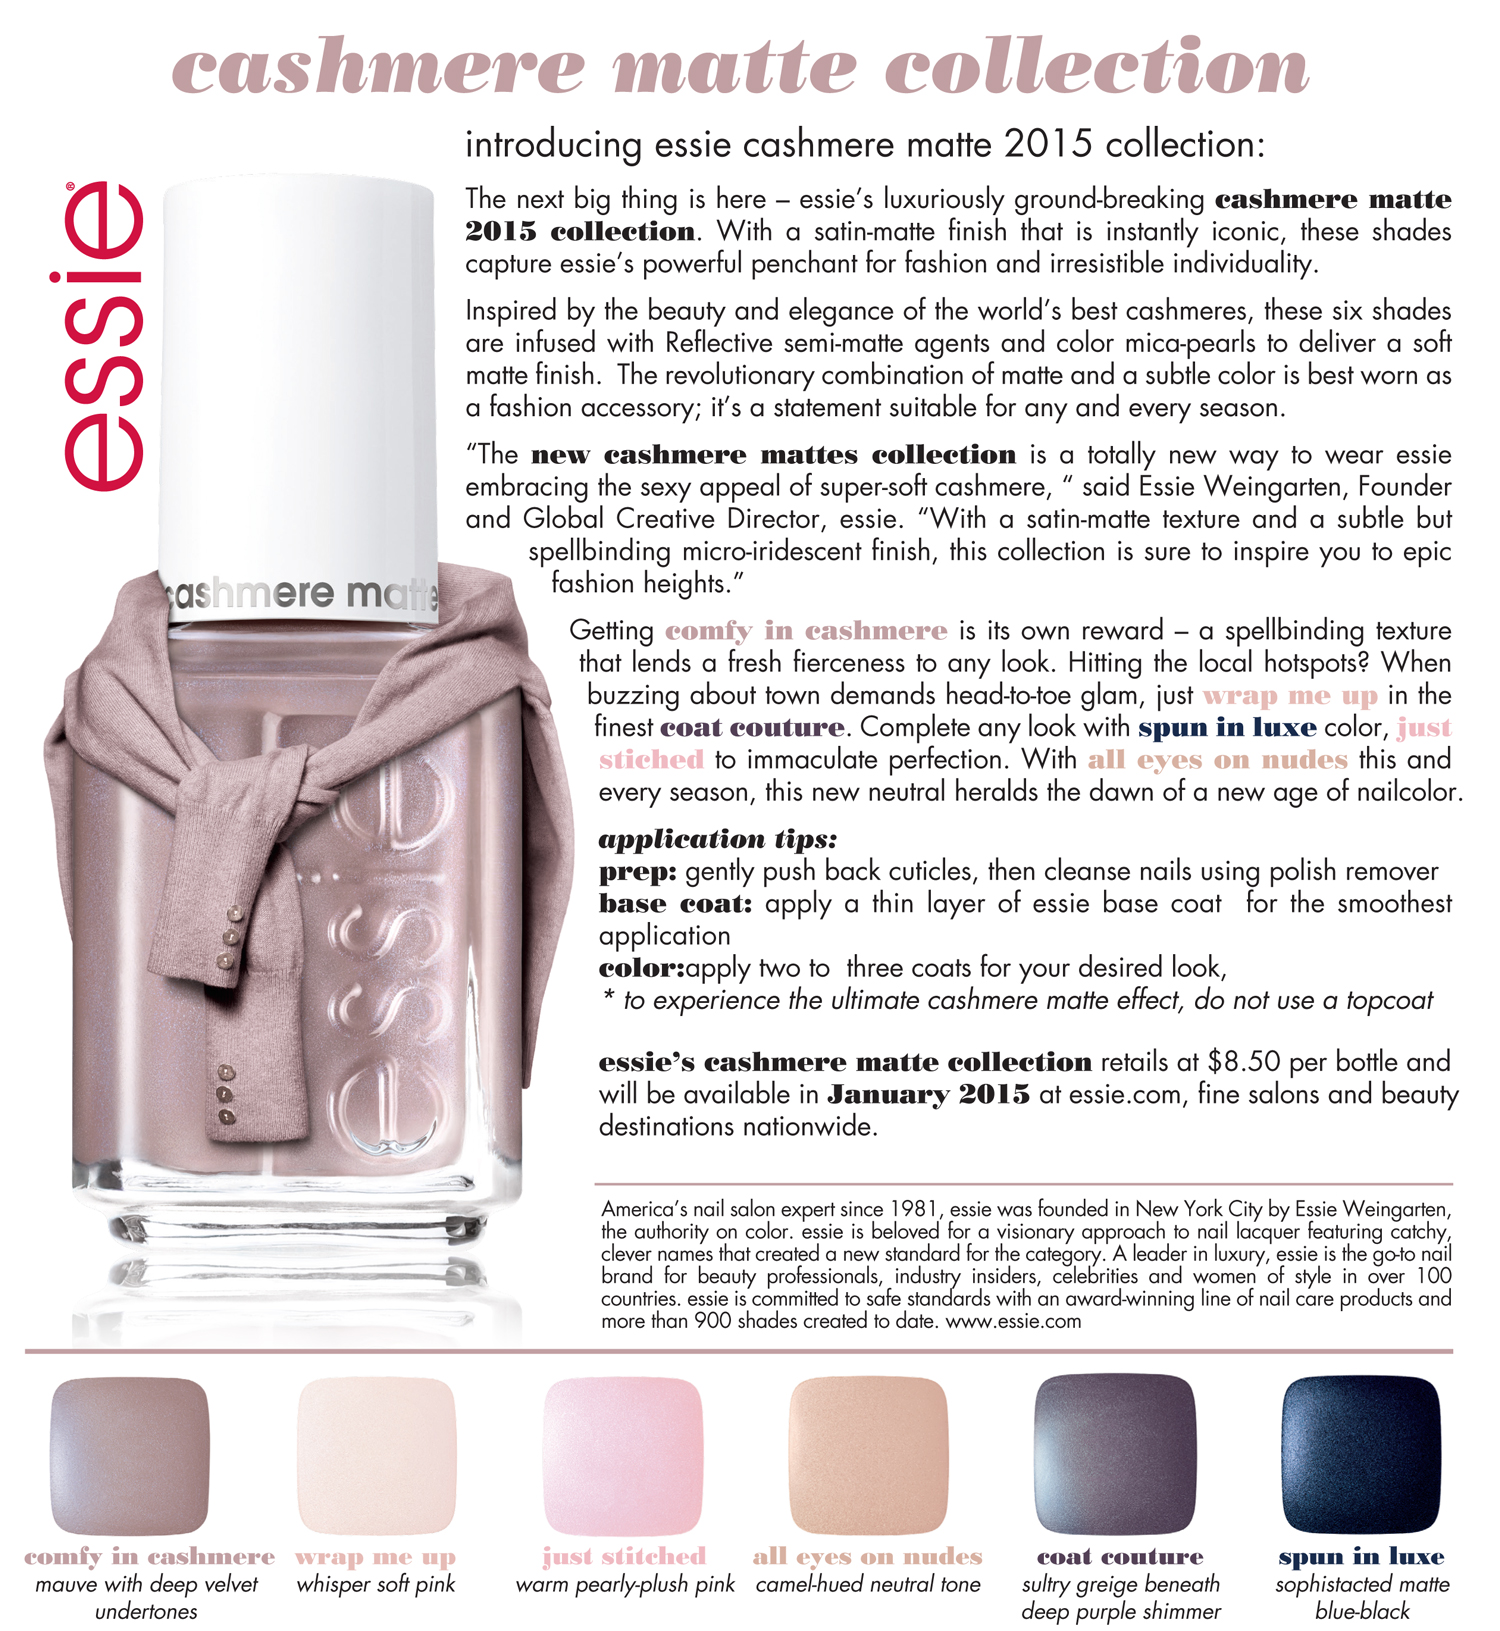 A CLOSER LOOK: ESSIE CASHMERE COLLECTION - The Trendy Nail